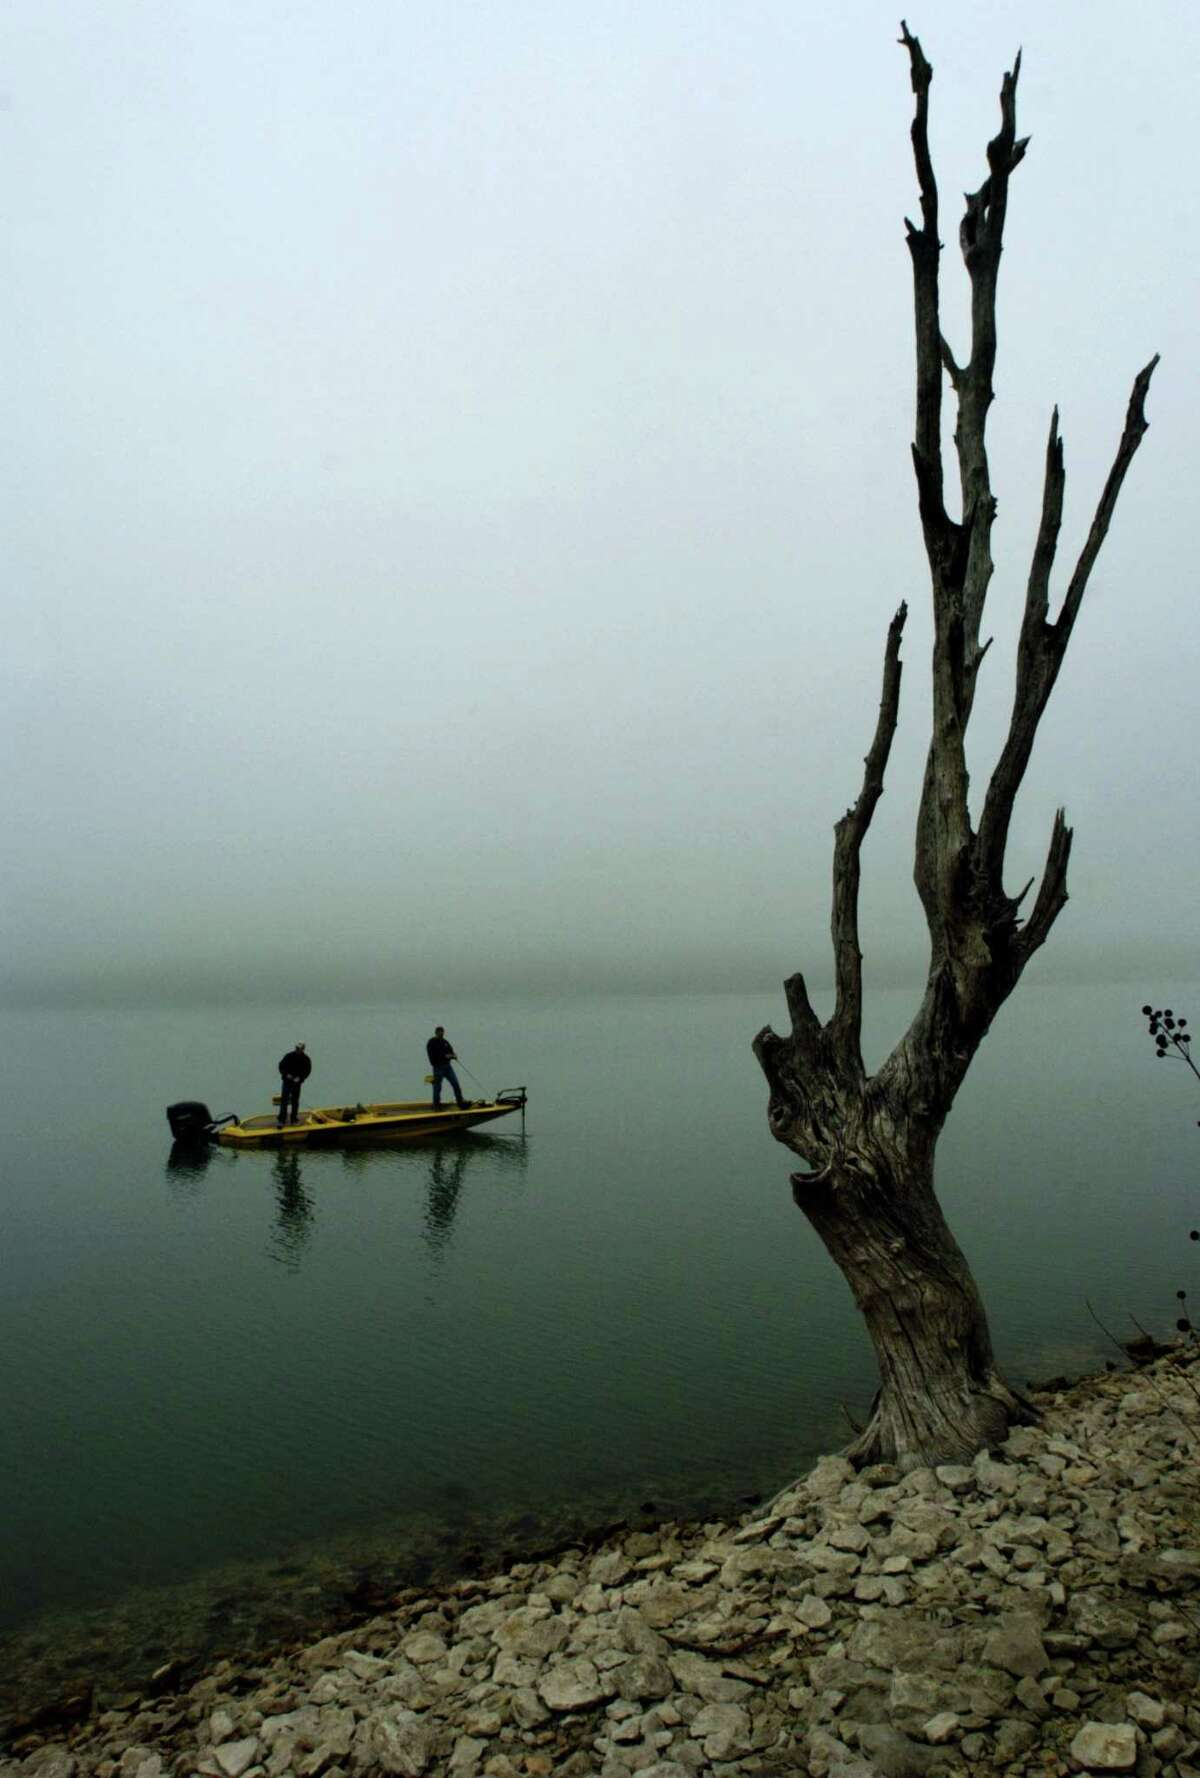 B.J. Gibson, left, and Travis Daugherty, of Jarrell, Texas, fish off their boat on Lake Belton as a recent wave of dense fog hits Central Texas and surrounds them Tuesday, Feb. 21, 2006, in Temple, Texas.